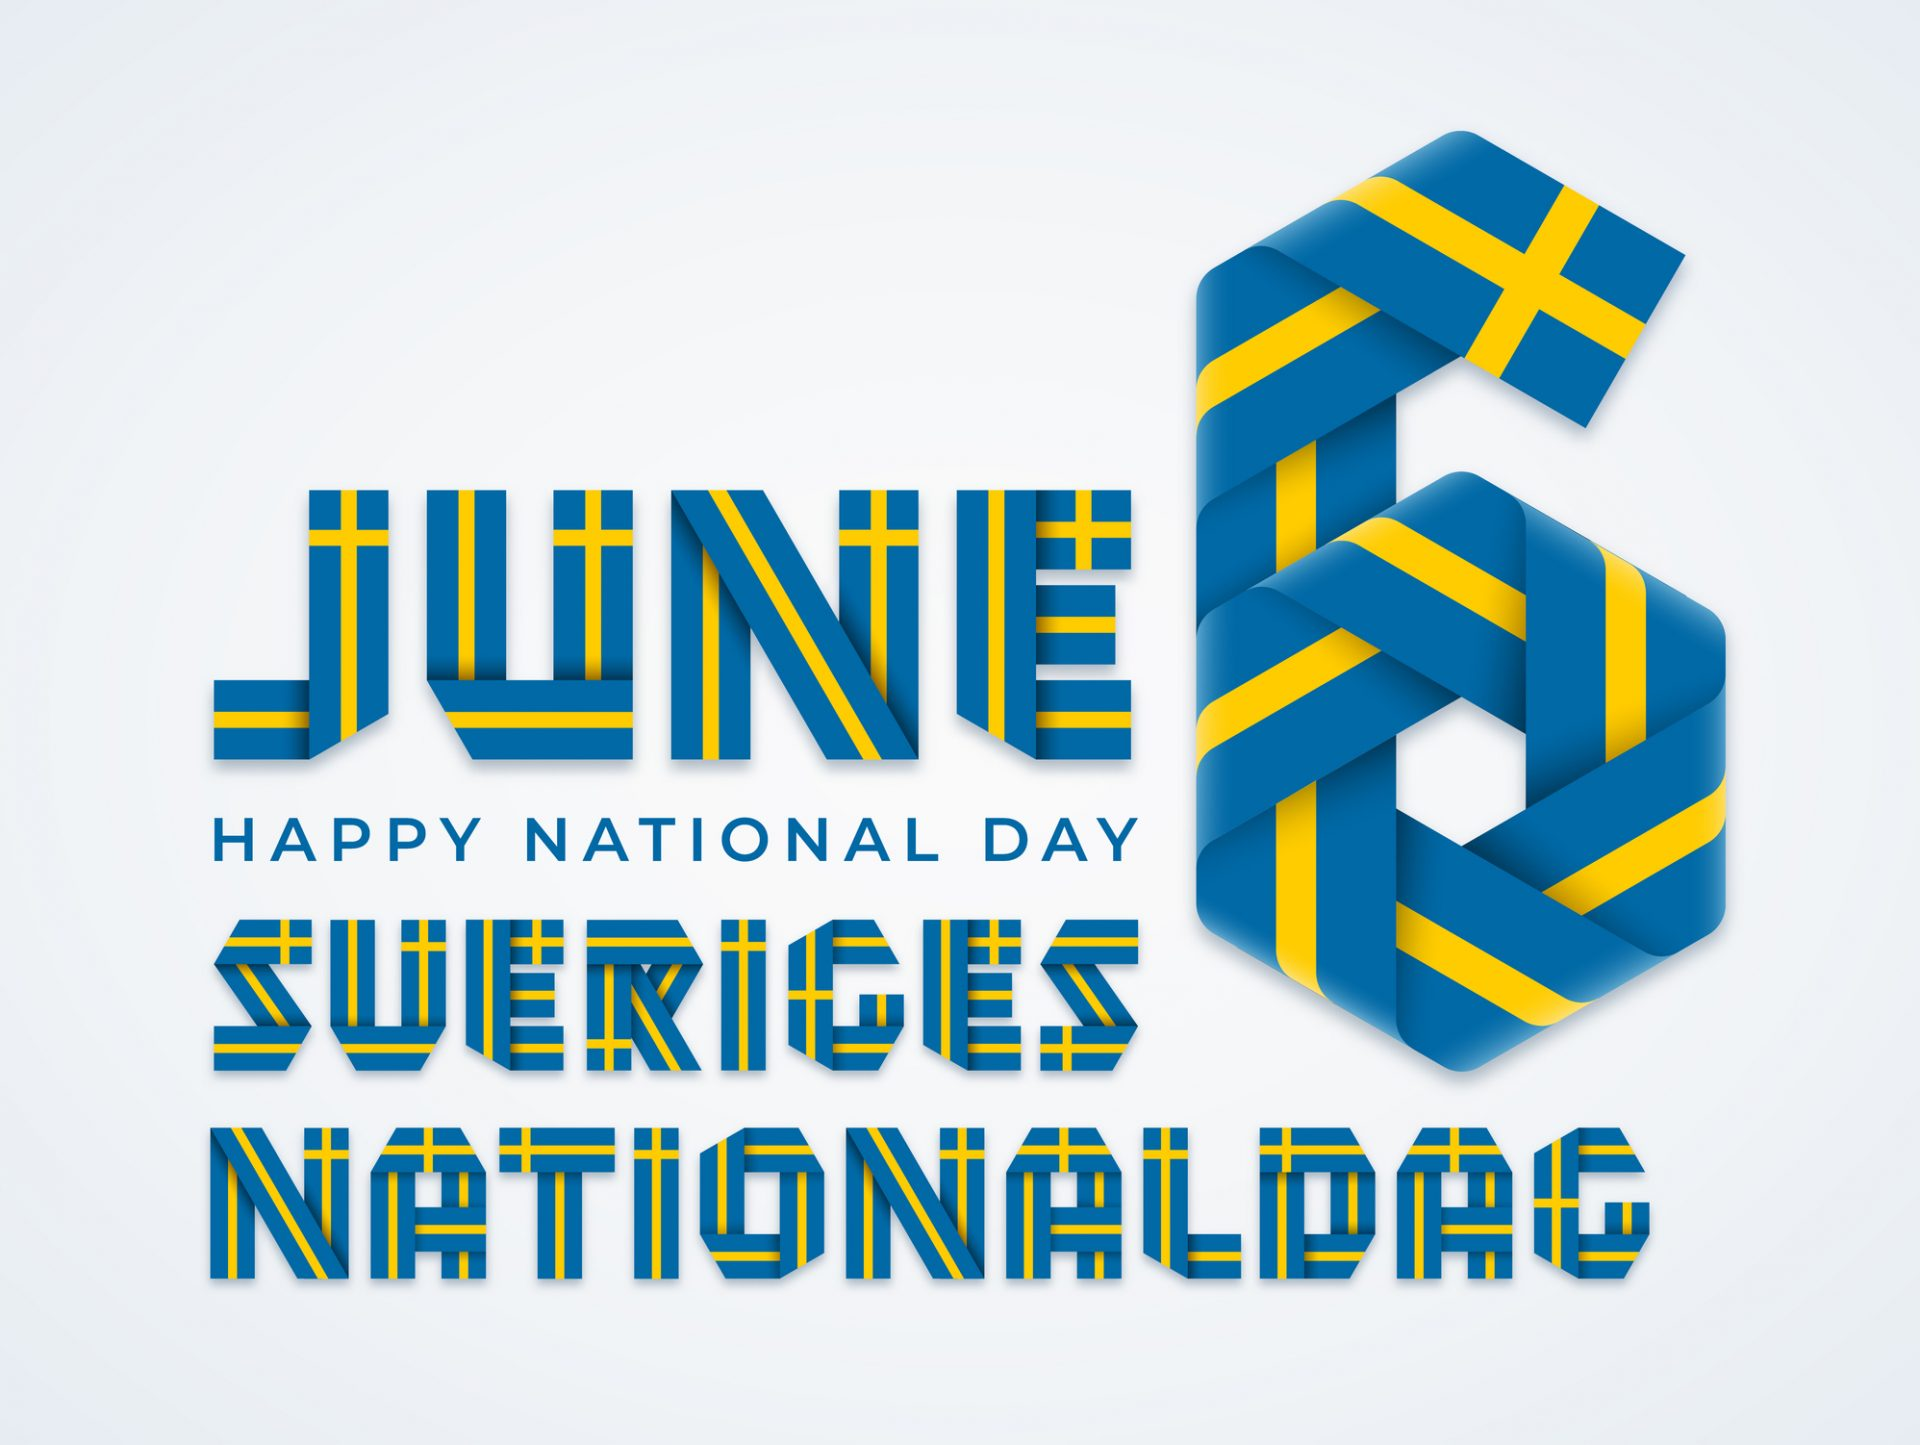 June 6, Sweden National Day congratulatory design with Swedish flag colors. Vector illustration.